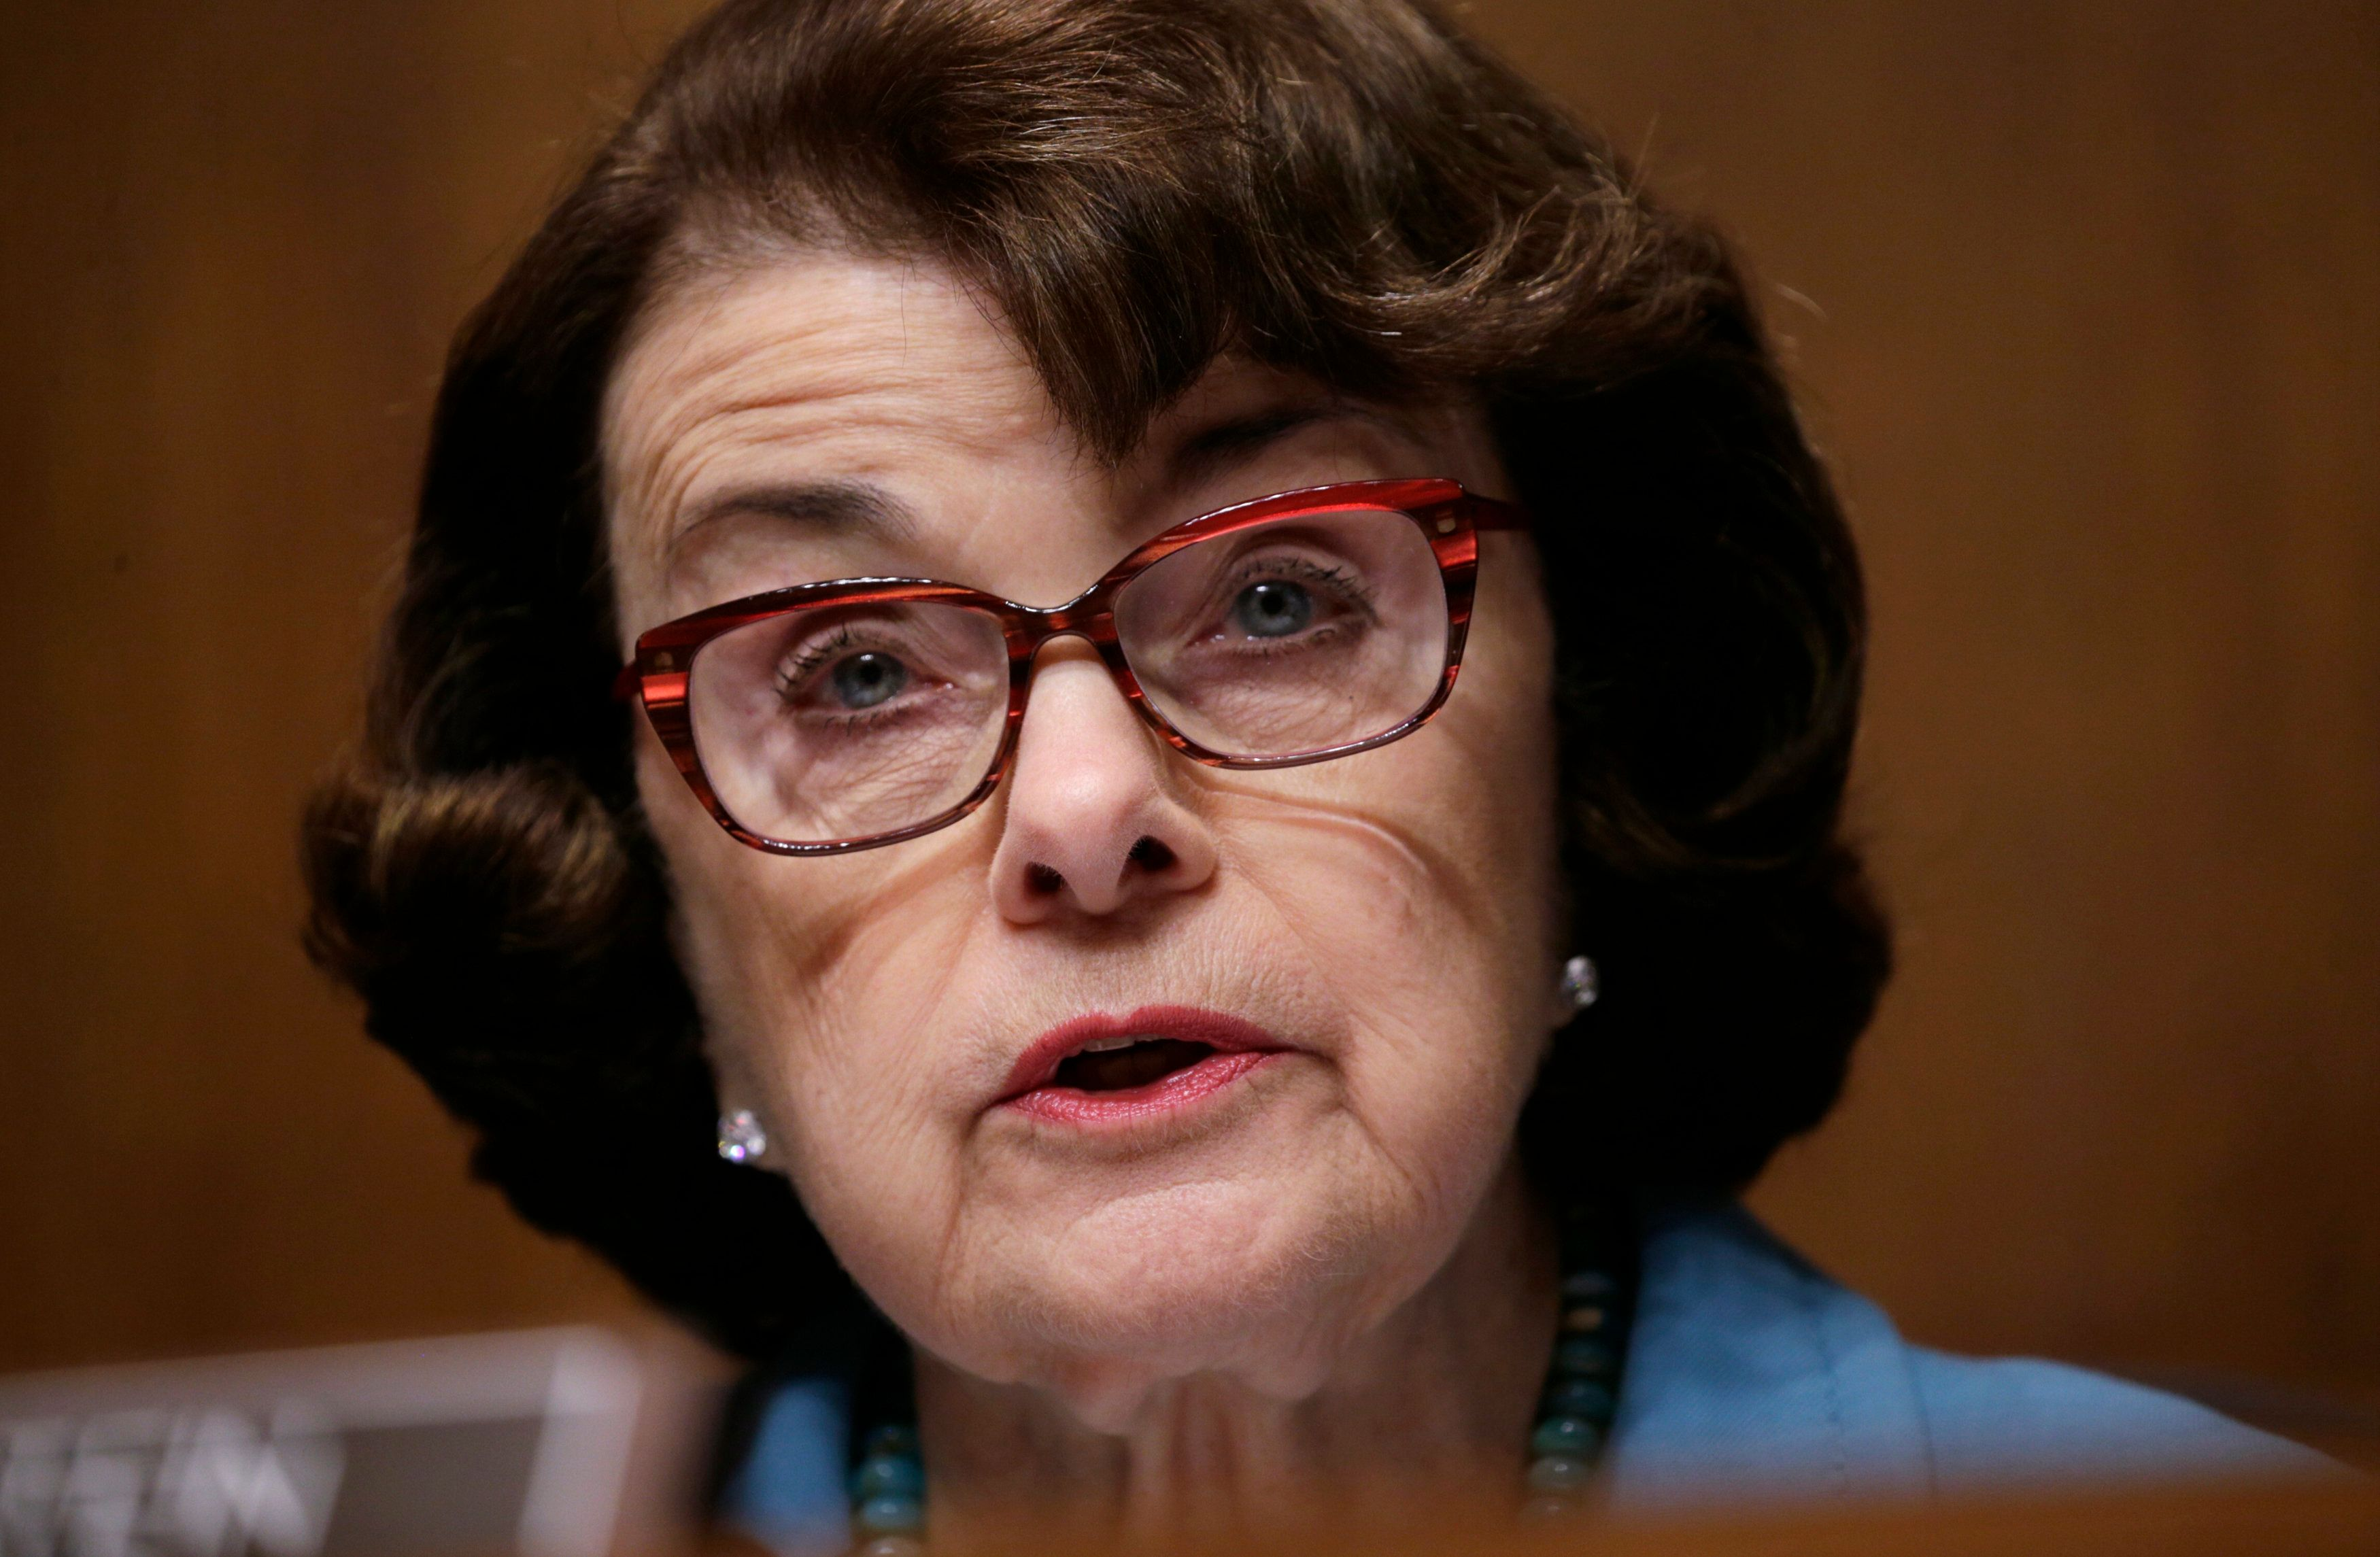 huffingtonpost.com - Mary Papenfuss - Feinstein Calls For 'Immediate Postponement' Of Kavanaugh Nomination After New Allegation Of Sexual Misconduct